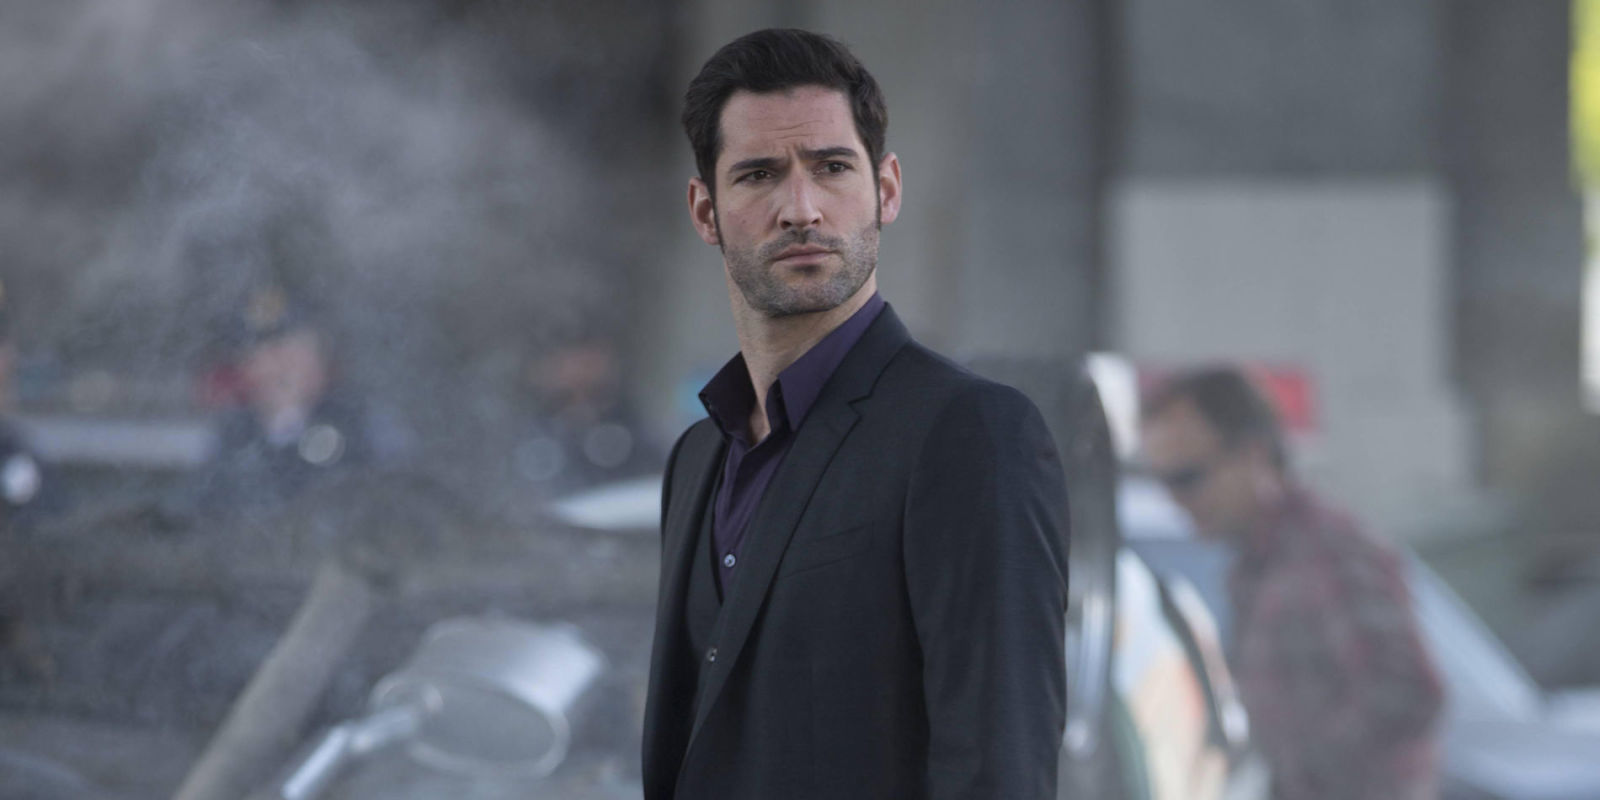 lucifer season 3 episode 15 free